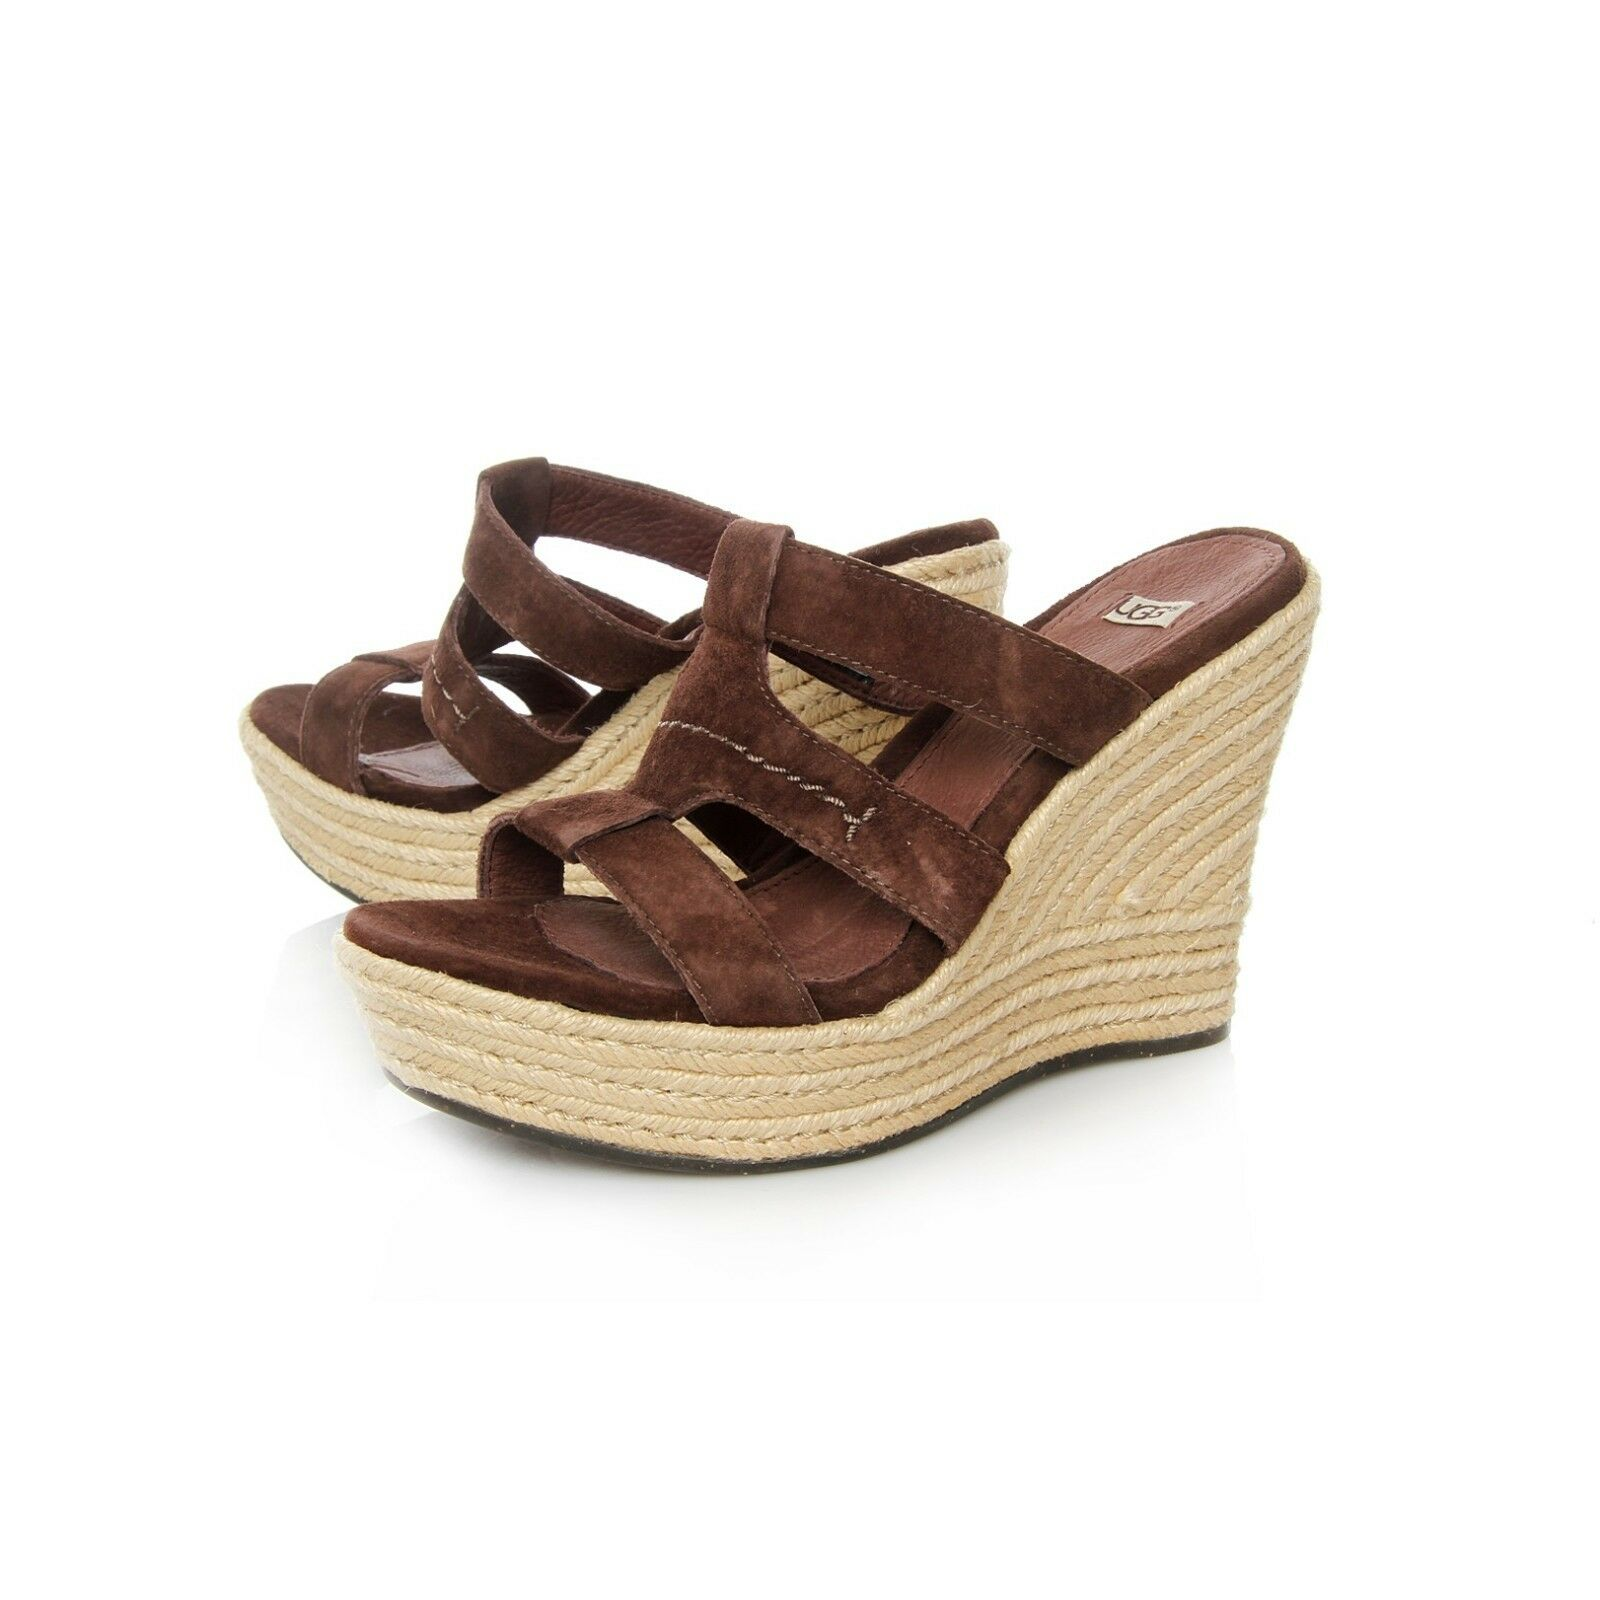 UGG AUSTRALIA TAWNIE SANDALS, WEDGES SHOES- TAILLE US 11- NOUVEAU